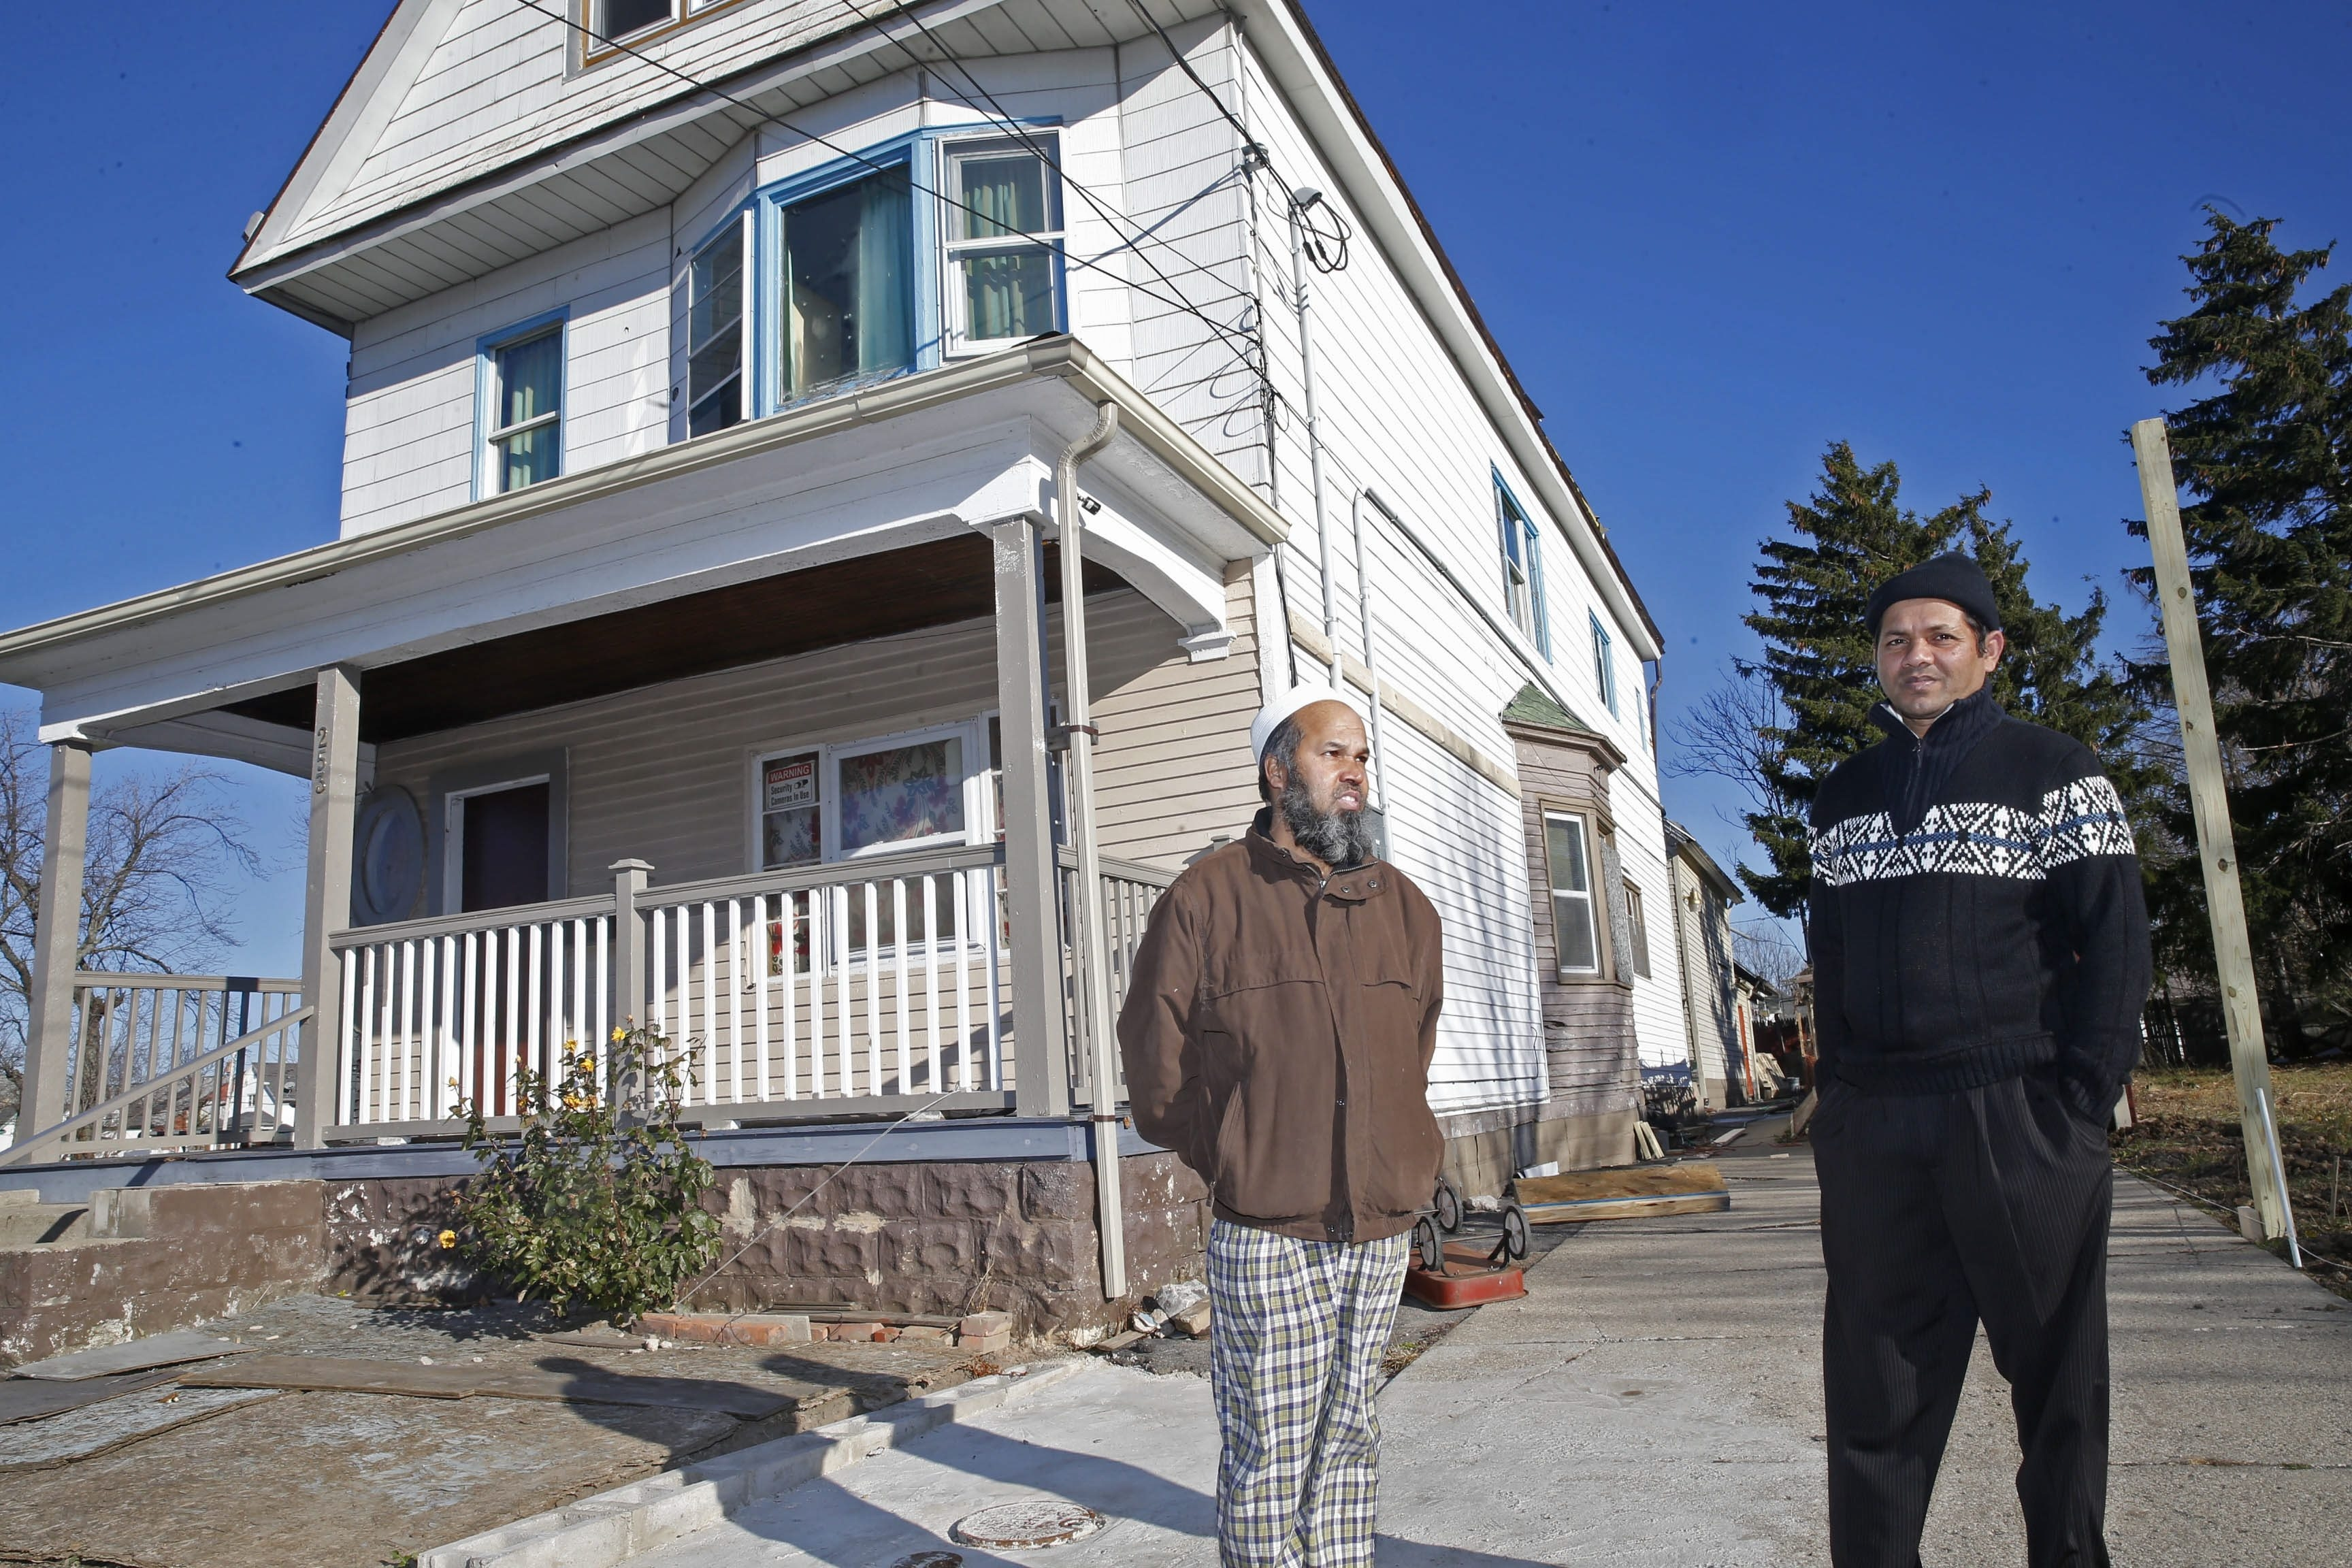 Bangladesh native Sheikh Rahman, left, and neighbor Kazi Ali Ahasan discuss the improvements they are making on their homes on Rother Avenue. Rahman moved in 2006 from Queens to Buffalo, where a dollar goes much farther.